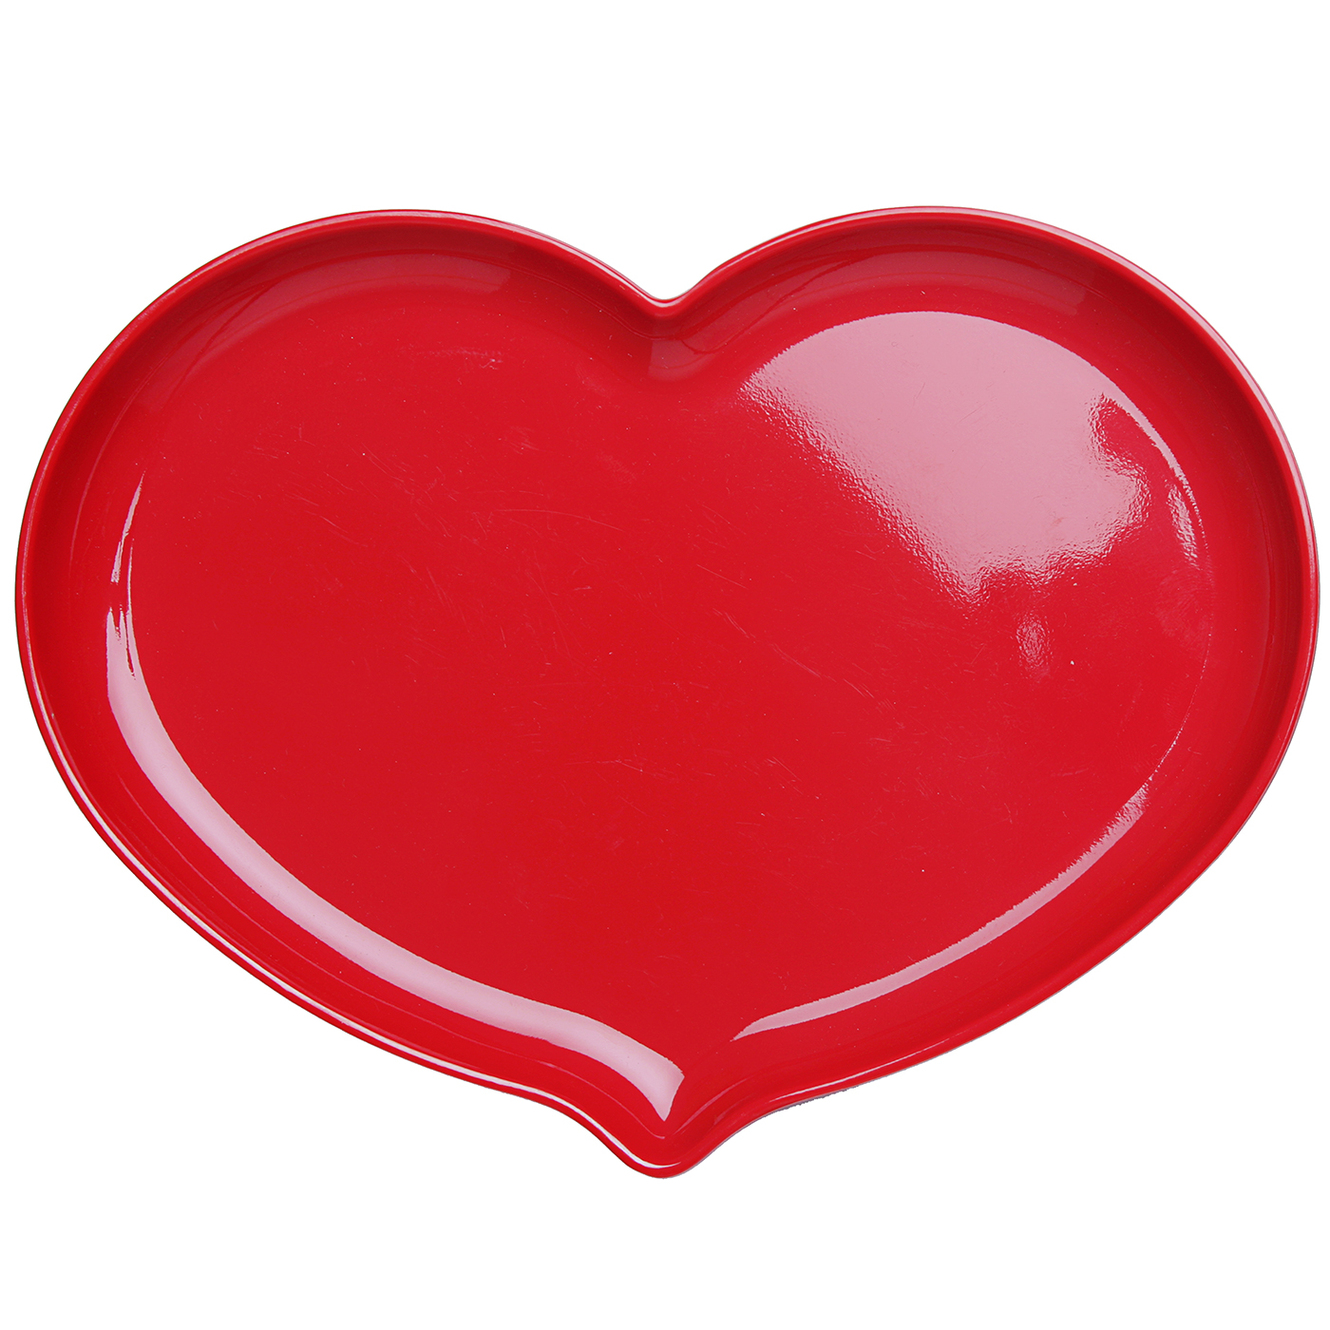 Heart Shaped Plate Red Lacquer Clipart.